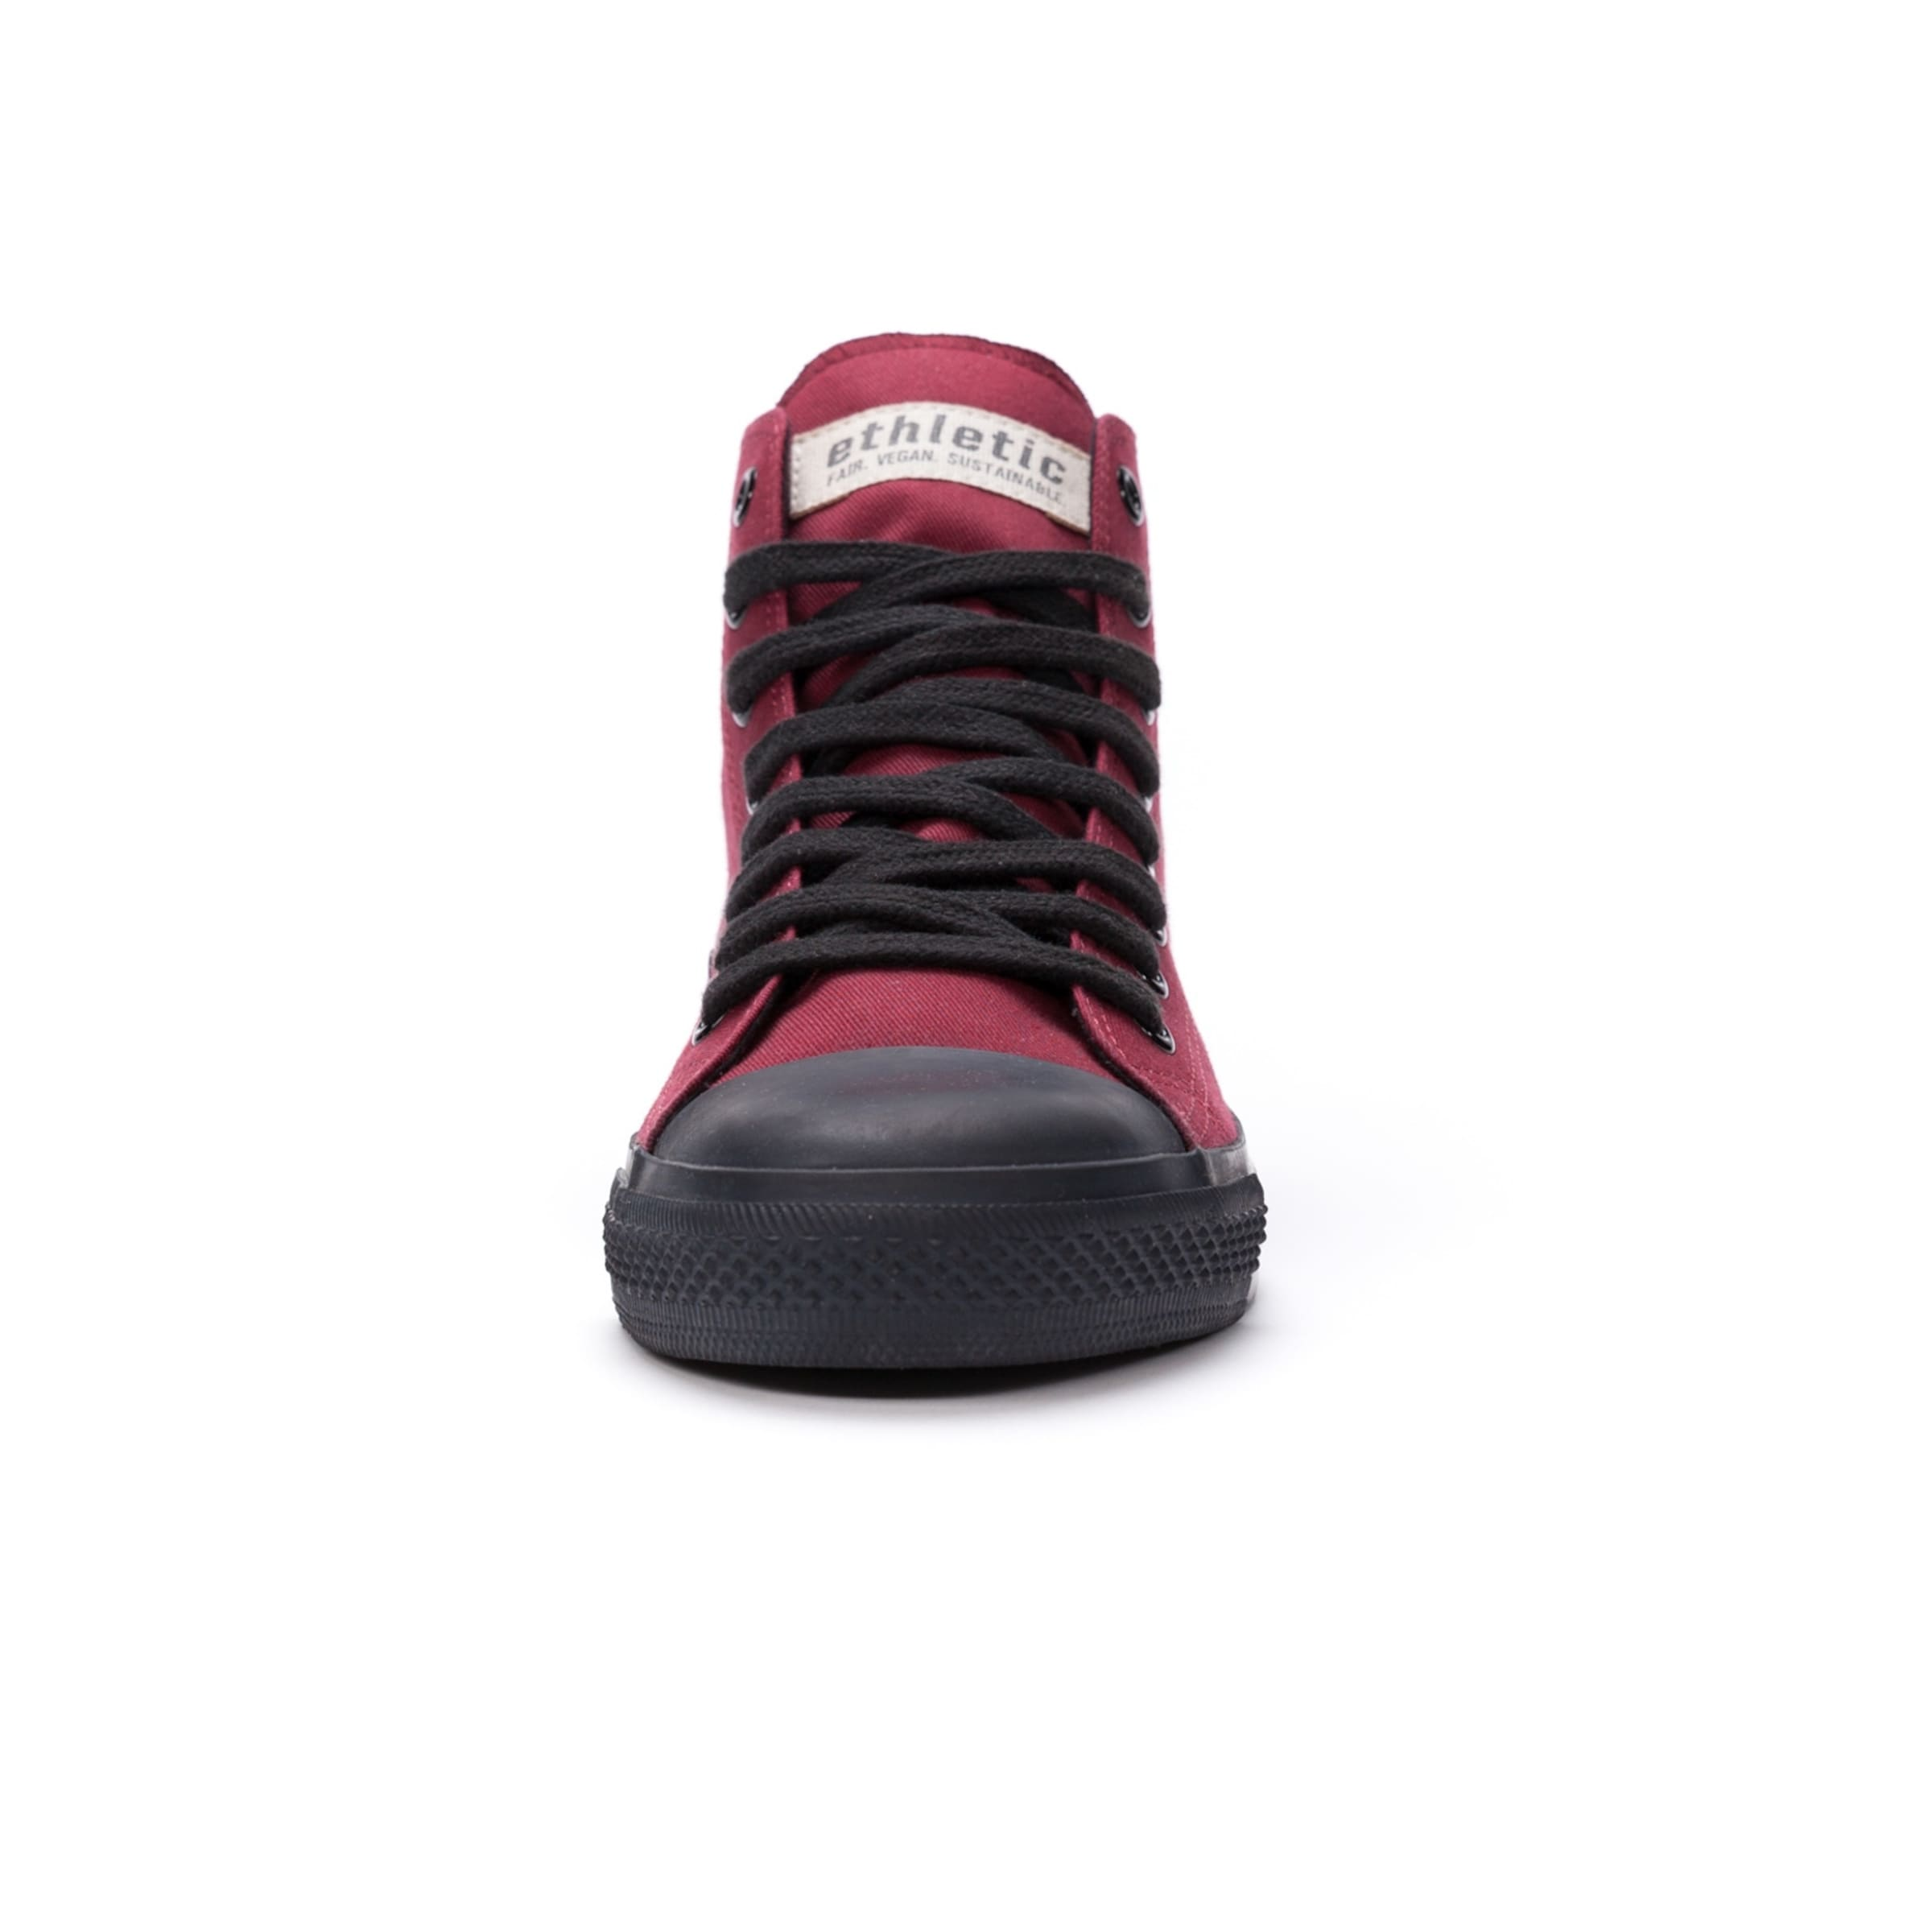 Sneaker Sneaker In Ethletic DunkelrotSchwarz Ethletic In F3KJl1Tc